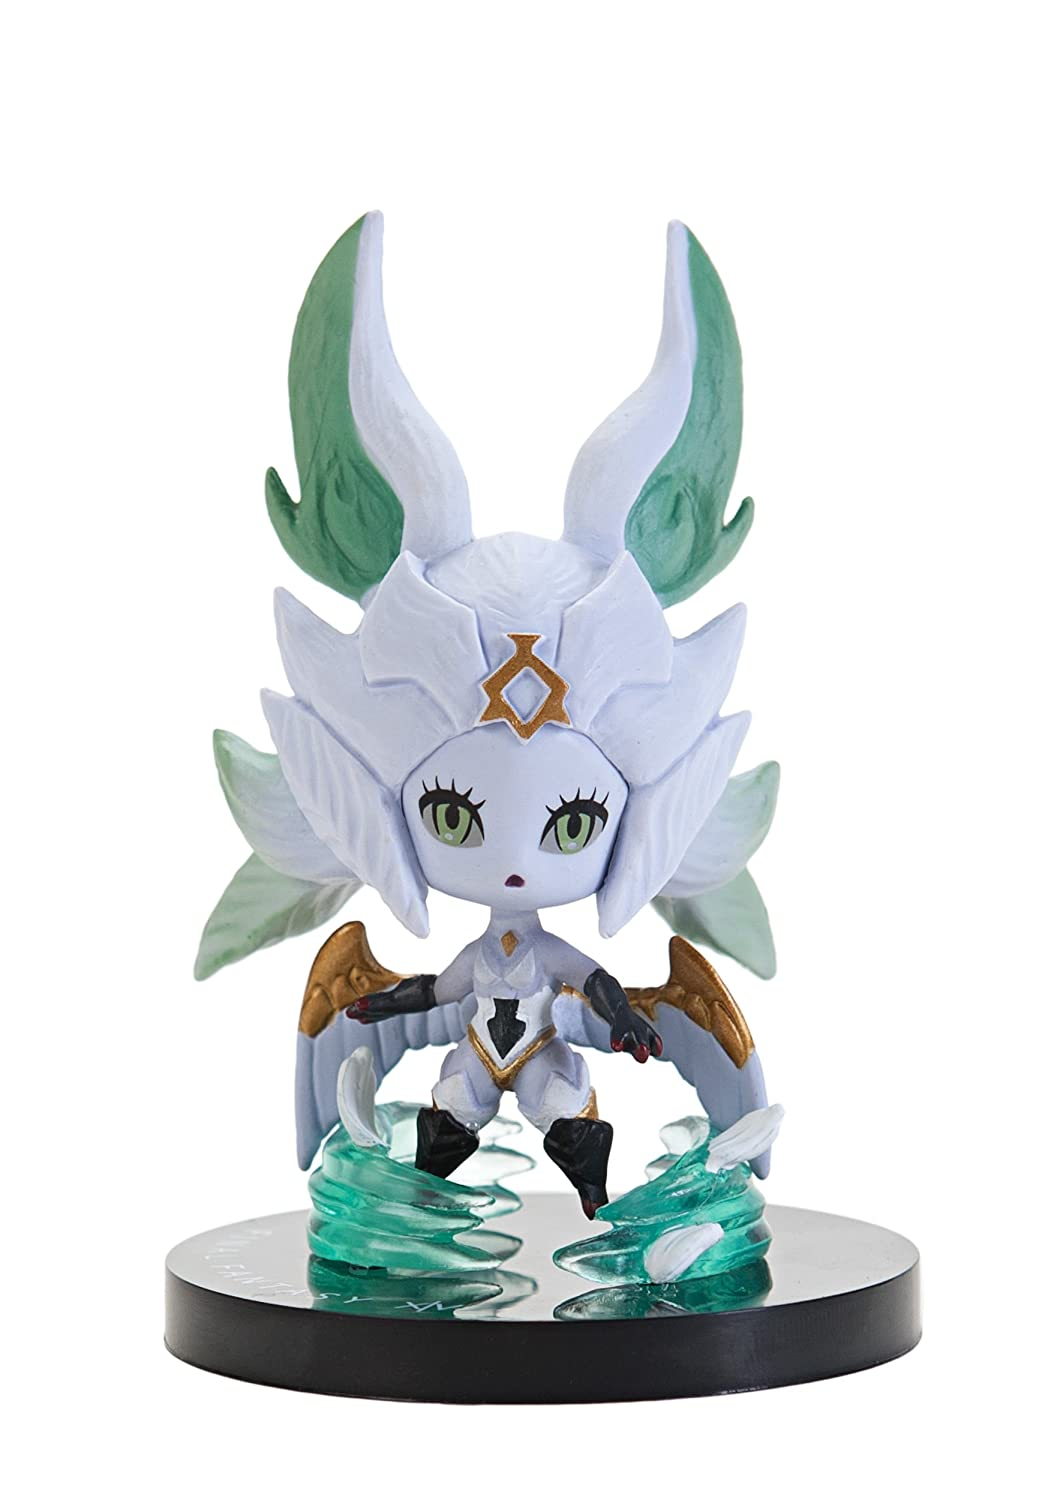 Taito Final Fantasy XIV Minion Figure vol.2 Garuda 2.3 Tall SG/_B01MY3G8FC/_US